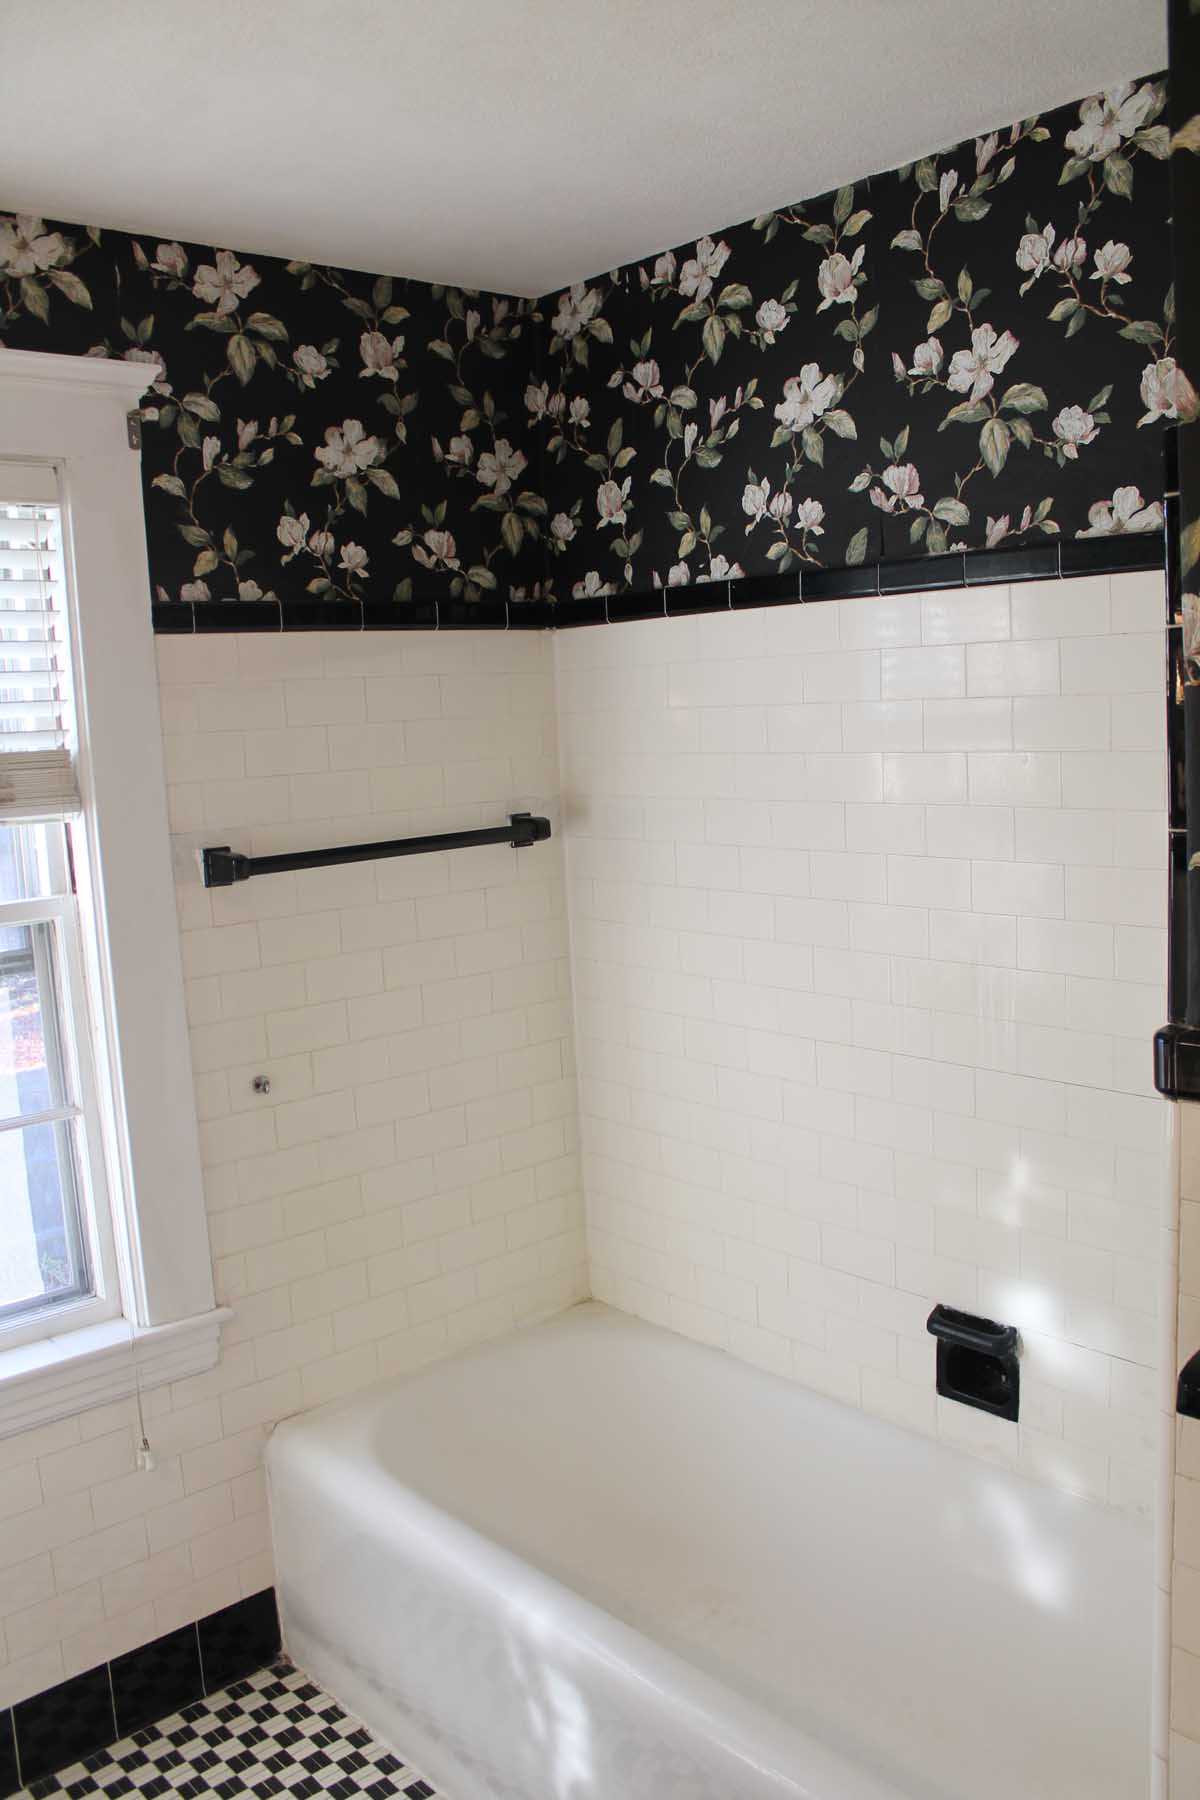 Wayne Rd. Needham - bathtub, and tile details before renovation